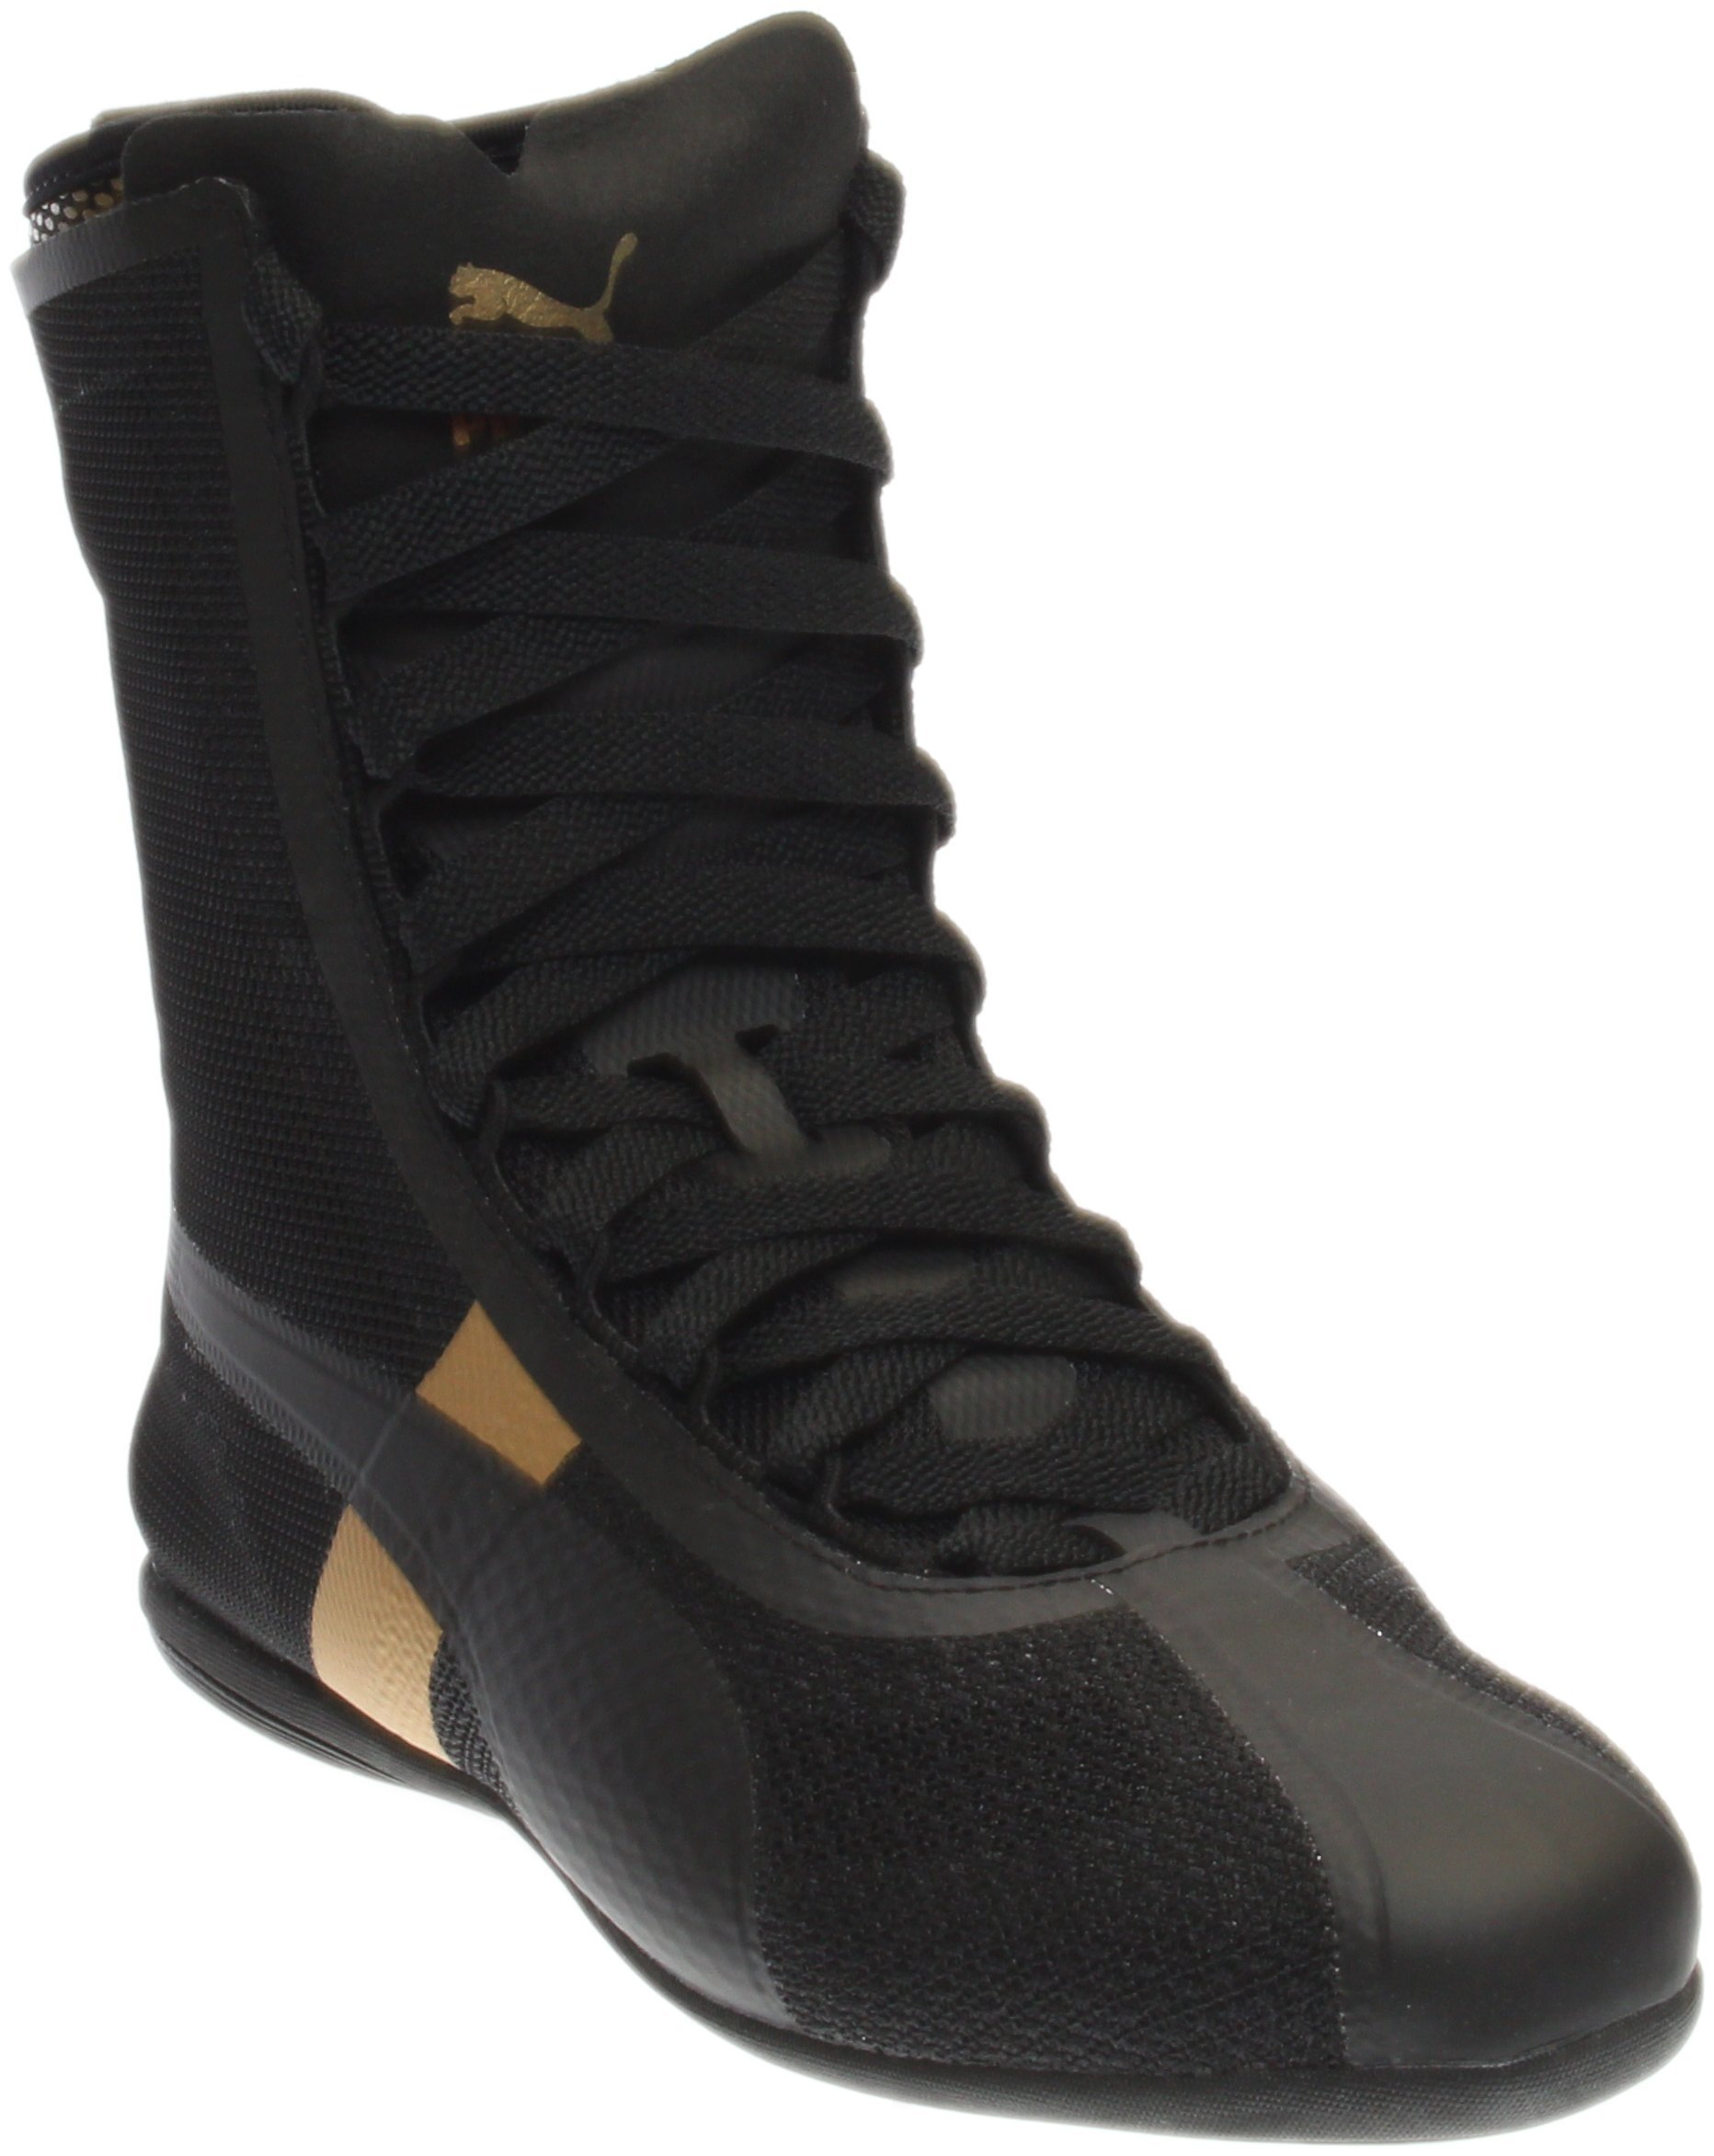 PUMA Women's Eskiva High EVO Black/Gold Athletic Shoe